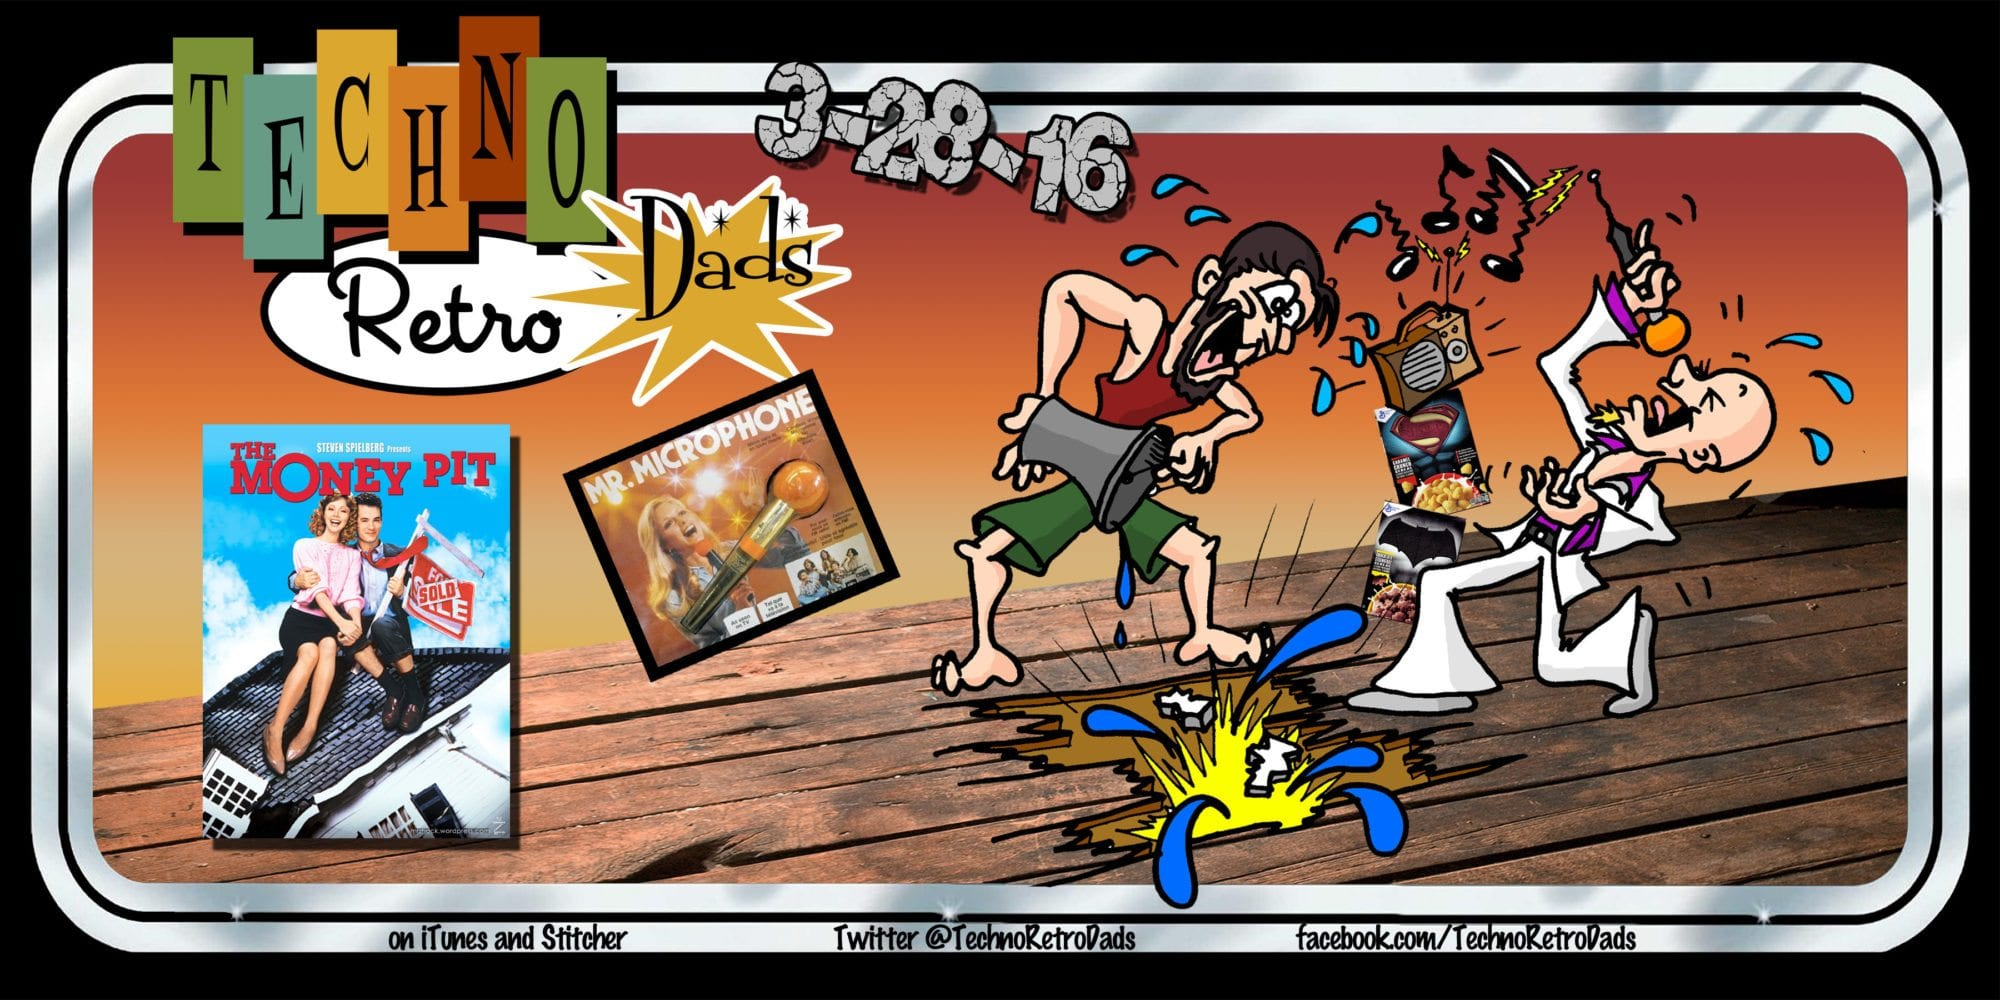 TechnoRetro Dads: Mr Microphone and the Money Pit